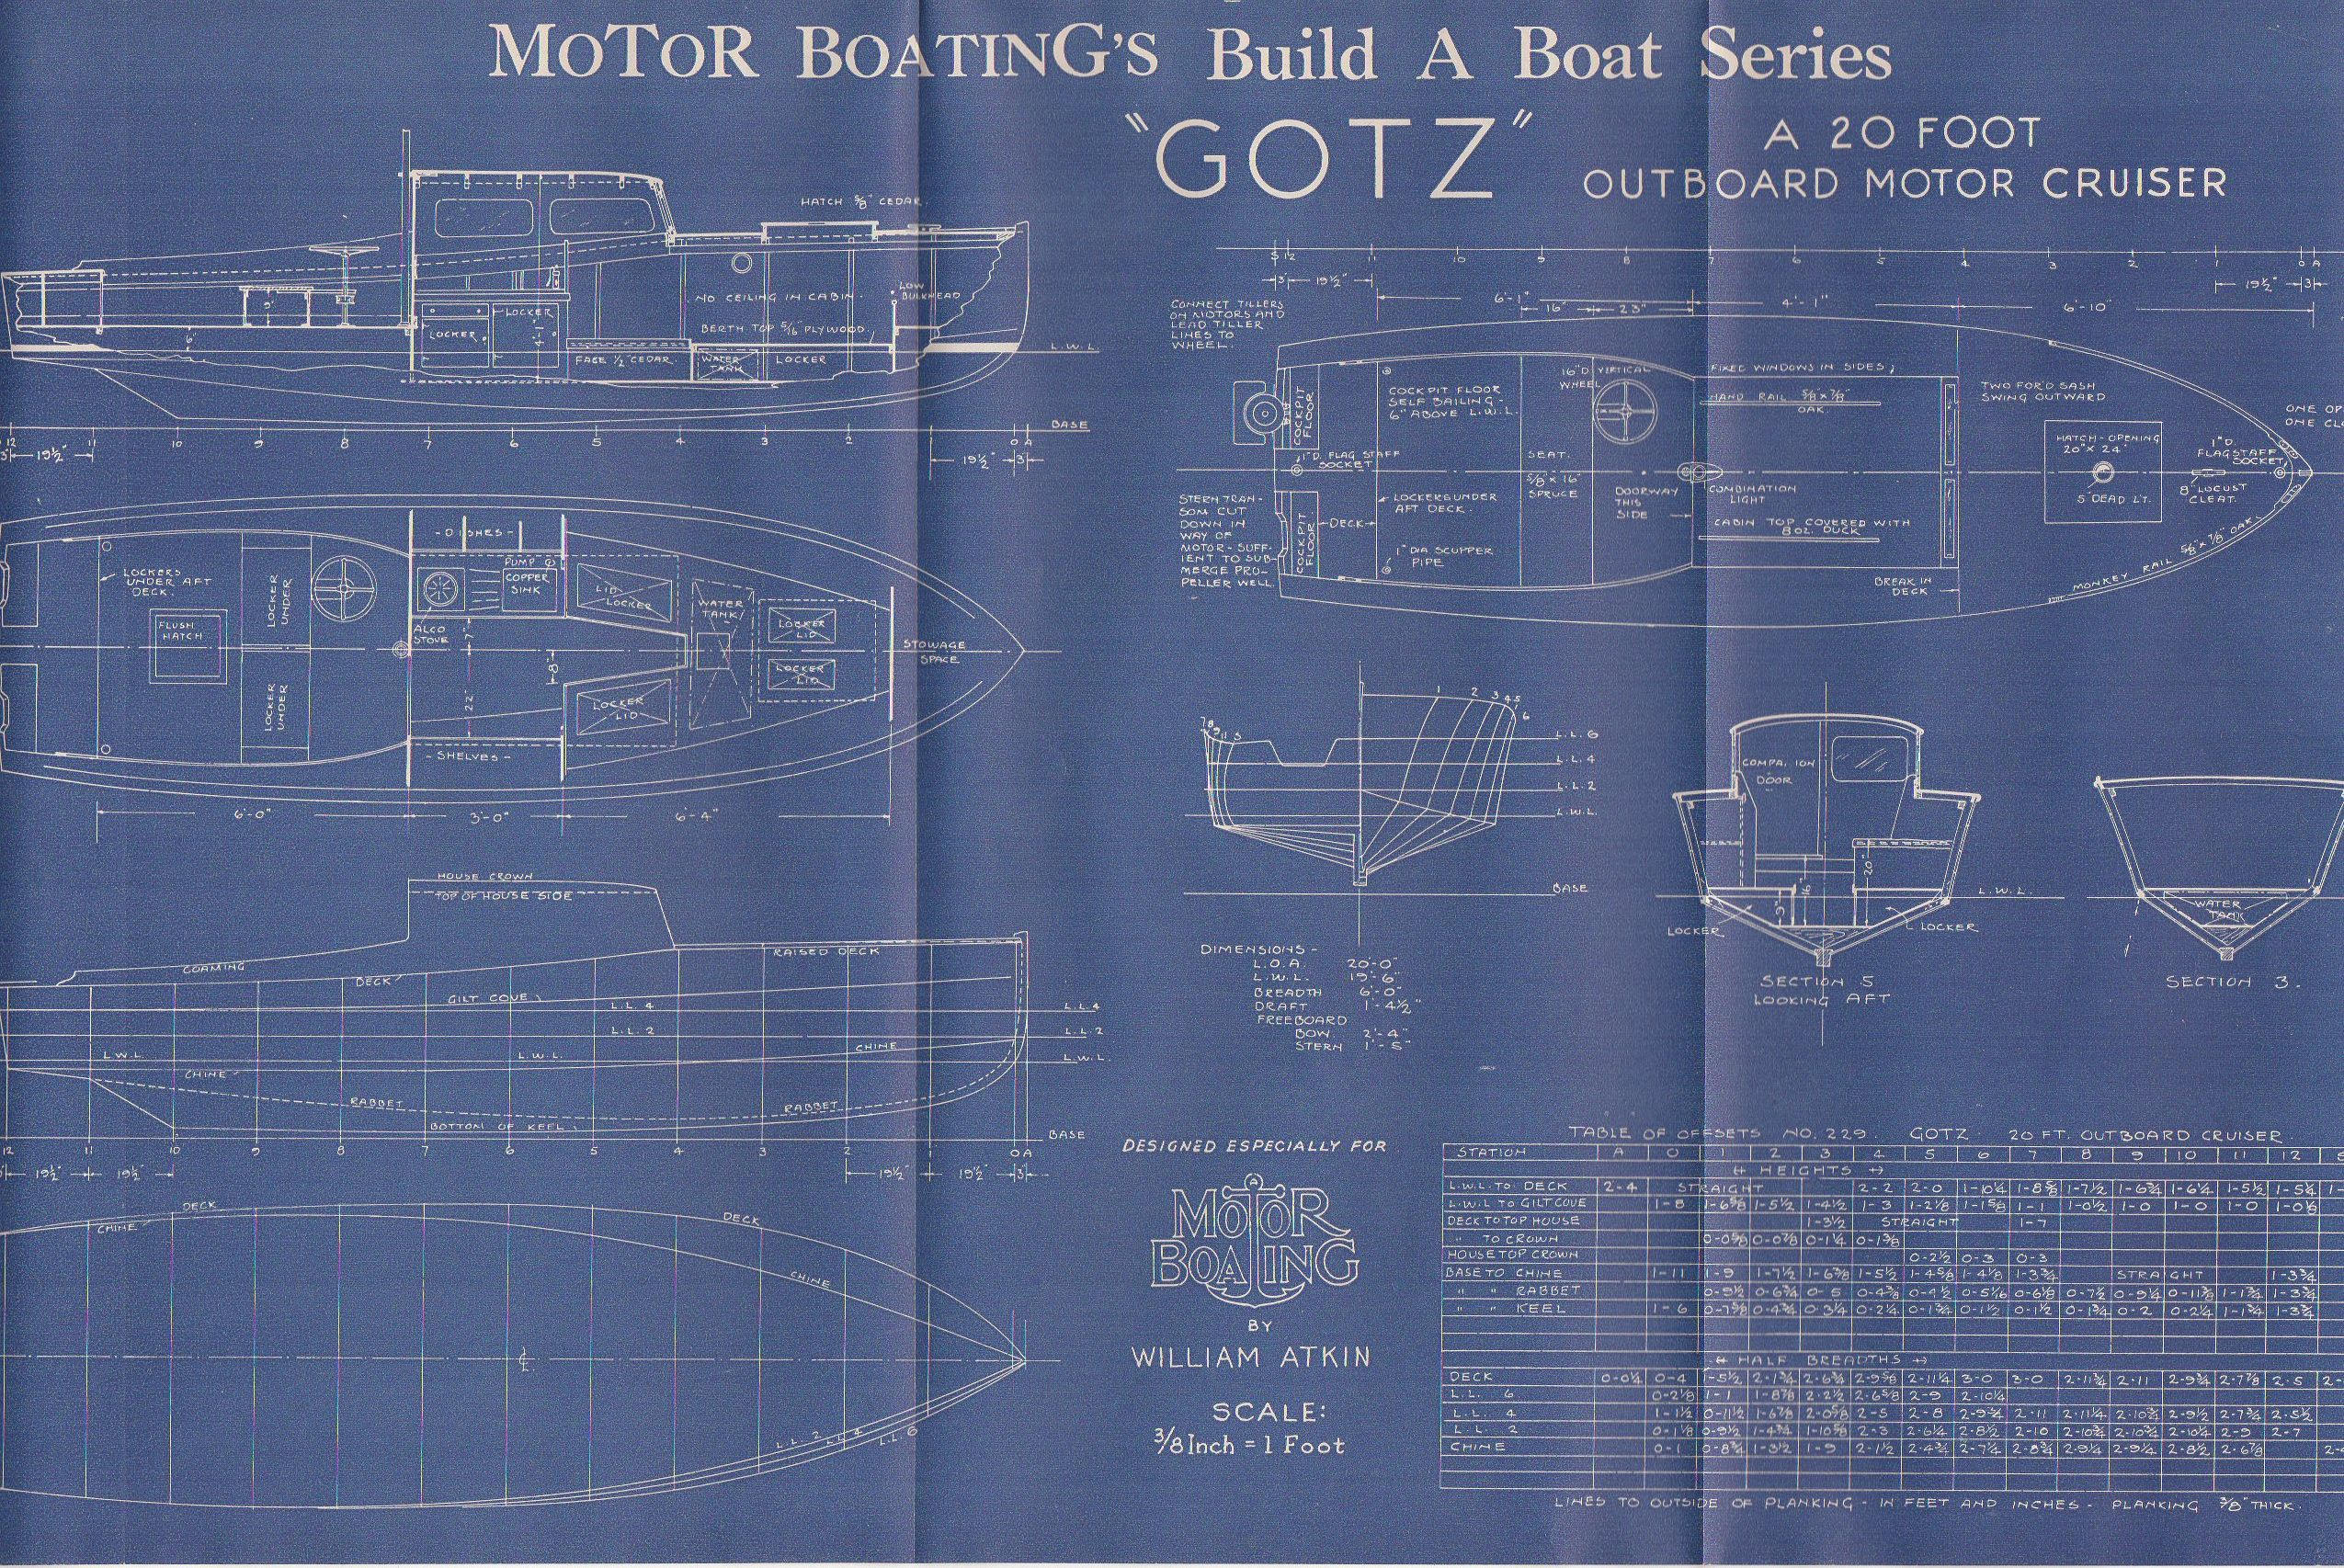 Vintage motor boat ship blueprint c1940s motor cruiser nautical art vintage motor boat ship blueprint c1940s motor cruiser nautical art urban industrial decor blue print blueprint art malvernweather